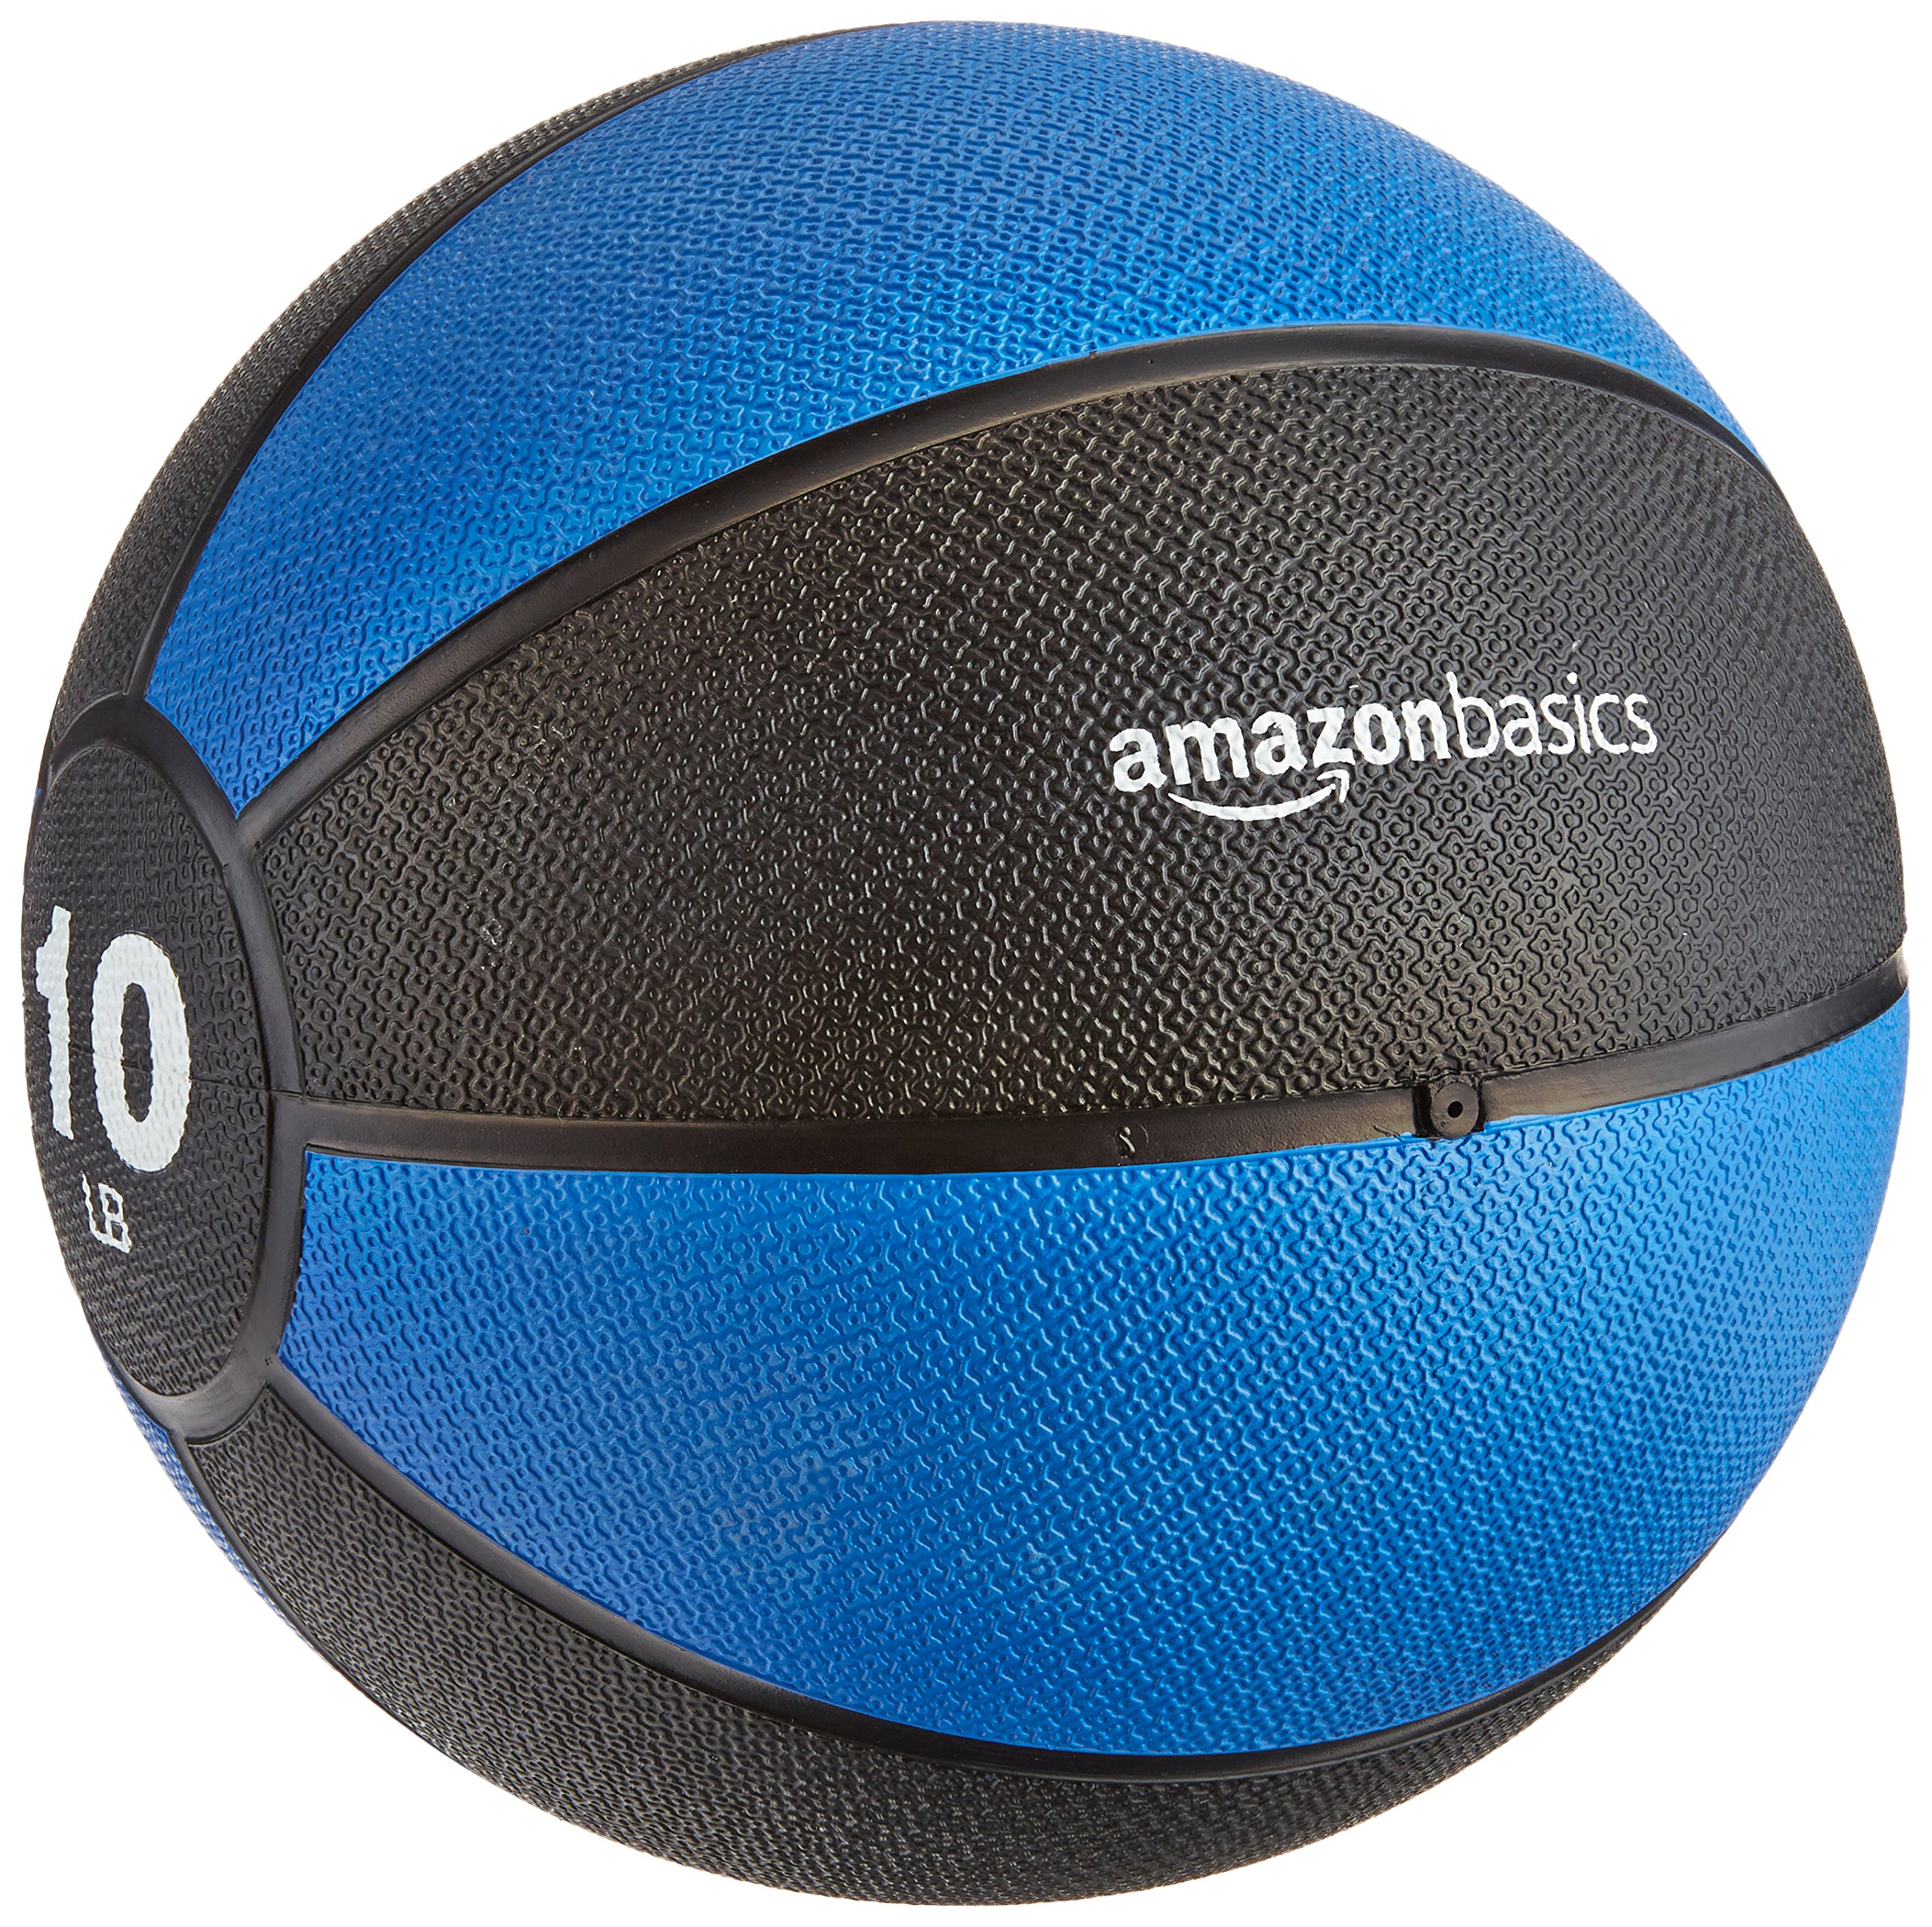 AmazonBasics Workout Fitness Exercise Weighted Medicine Ball - 10 Pounds, Blue and Black by AmazonBasics